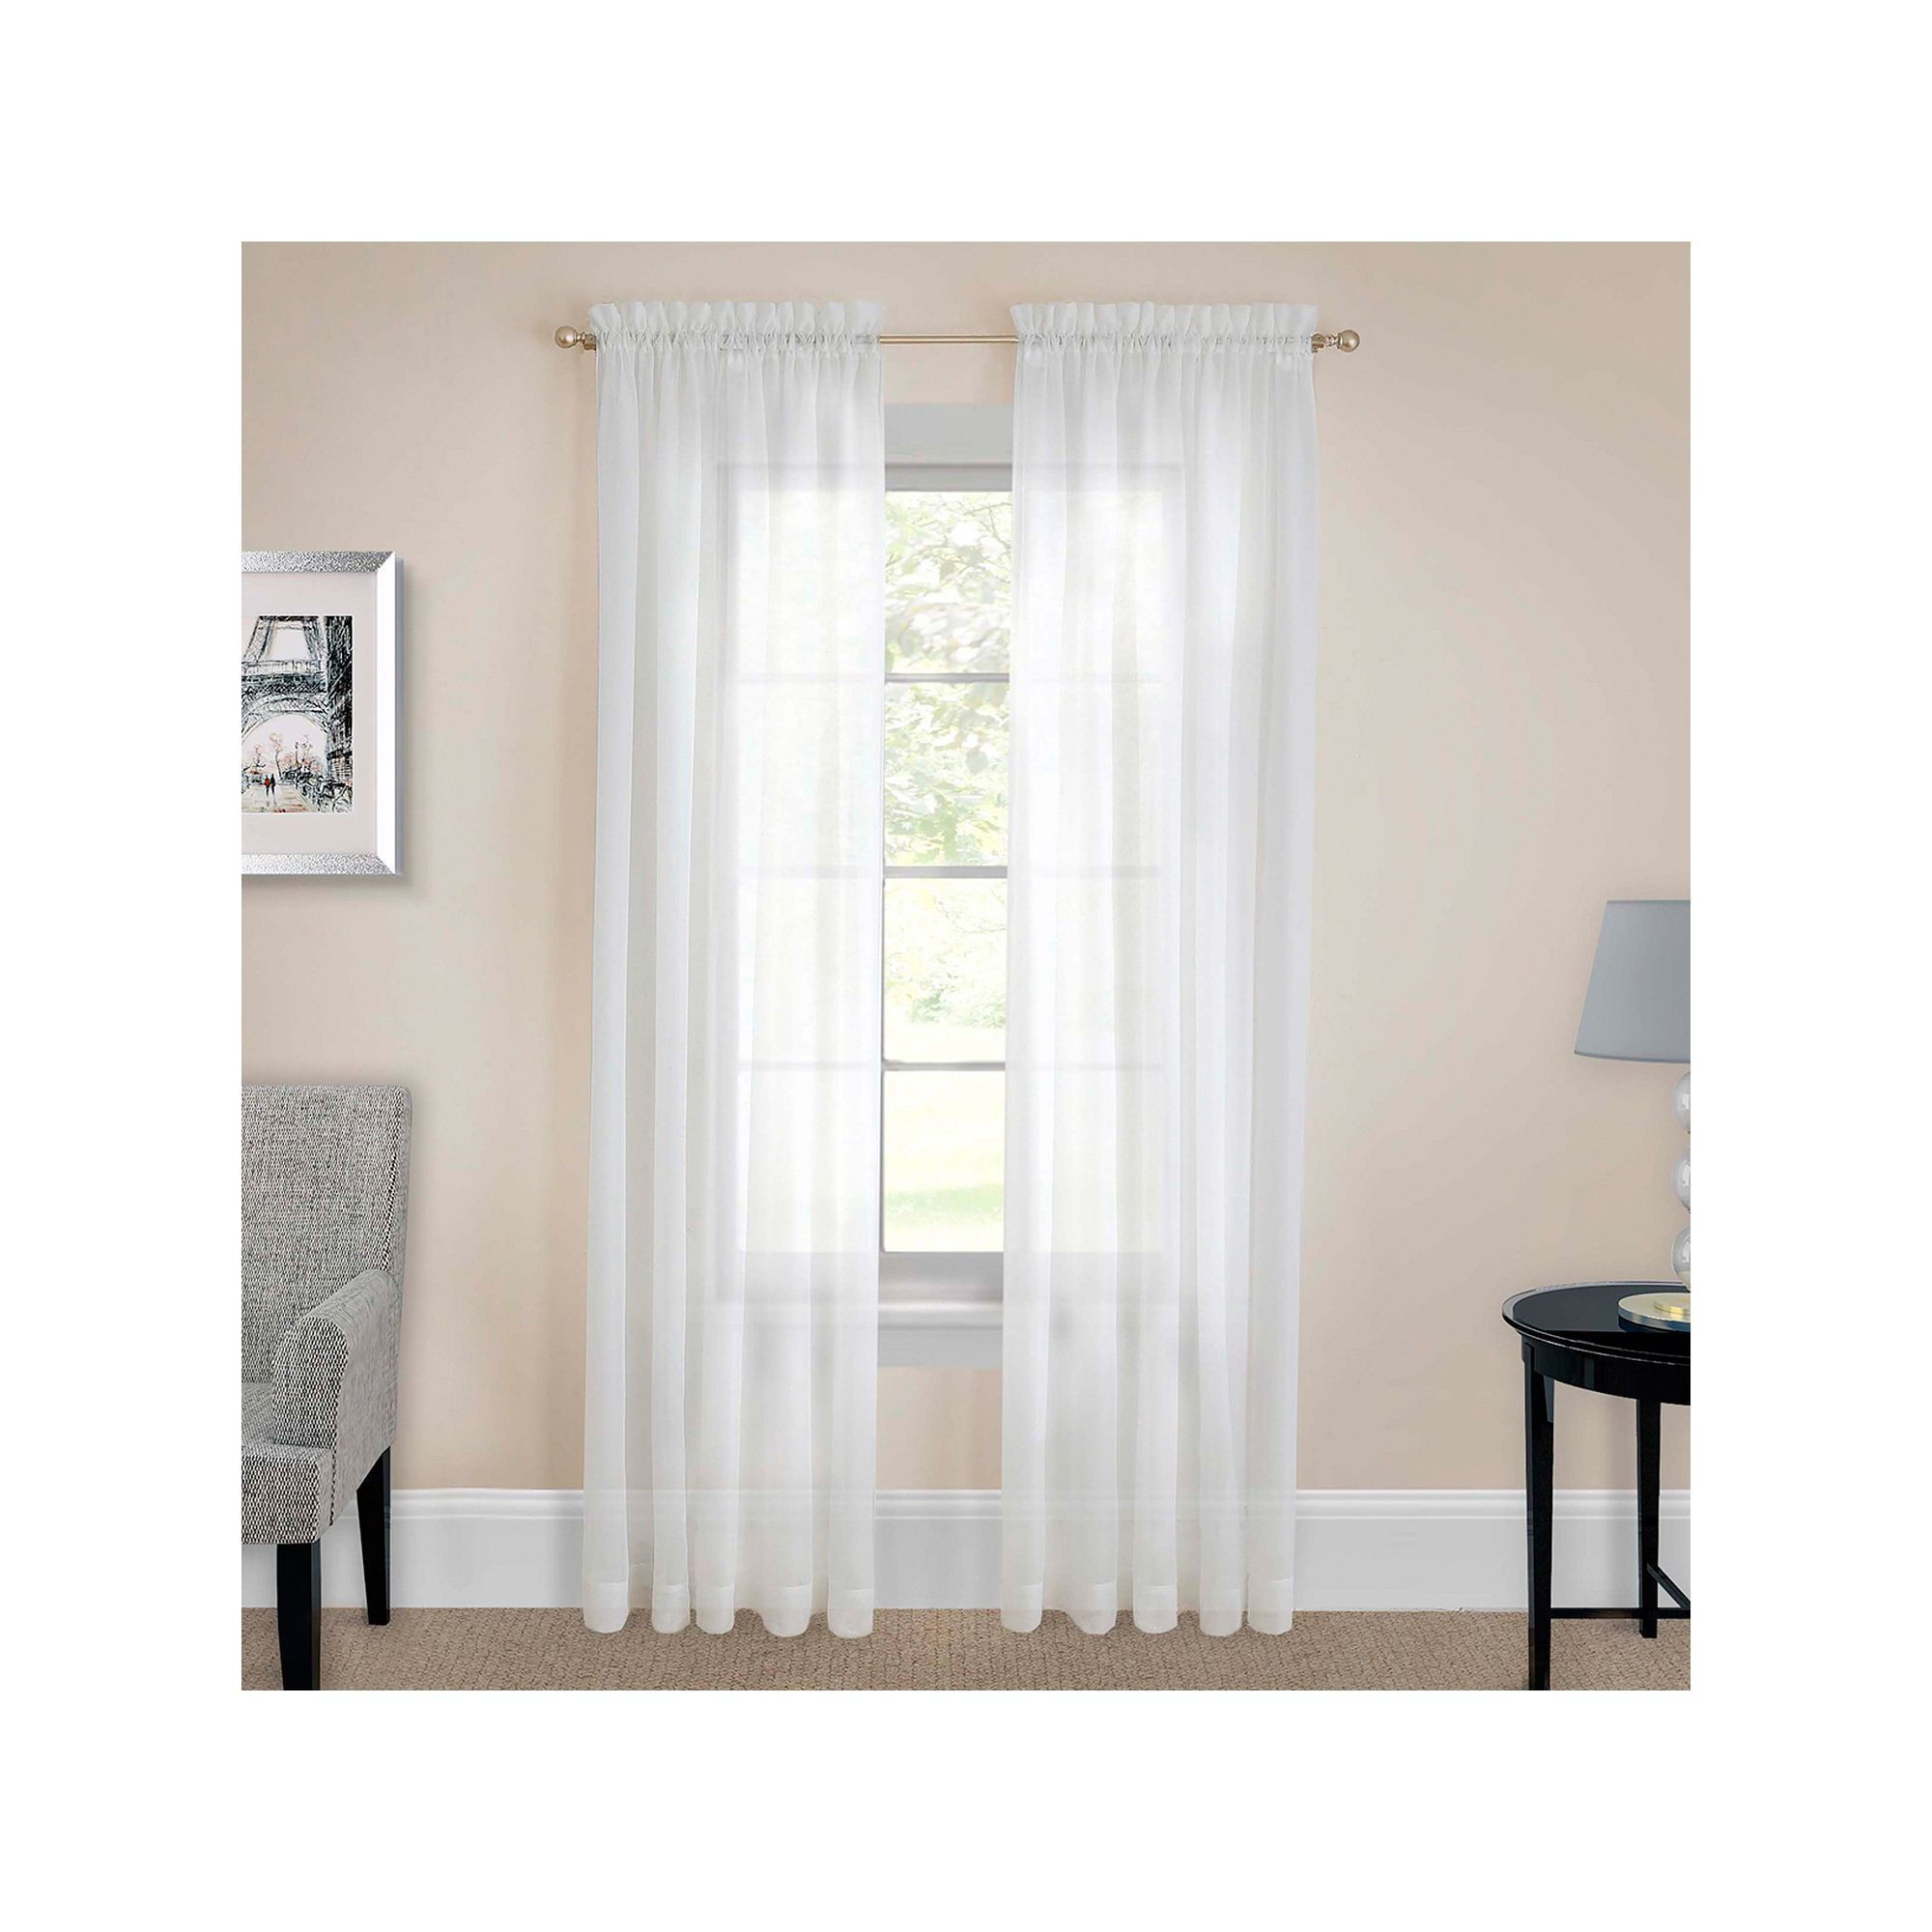 Most Recent Pairs To Go Victoria Voile Curtain Panel Pairs Within Pairs To Go 2 Pack Victoria Voile Window Curtains, White (Gallery 11 of 20)